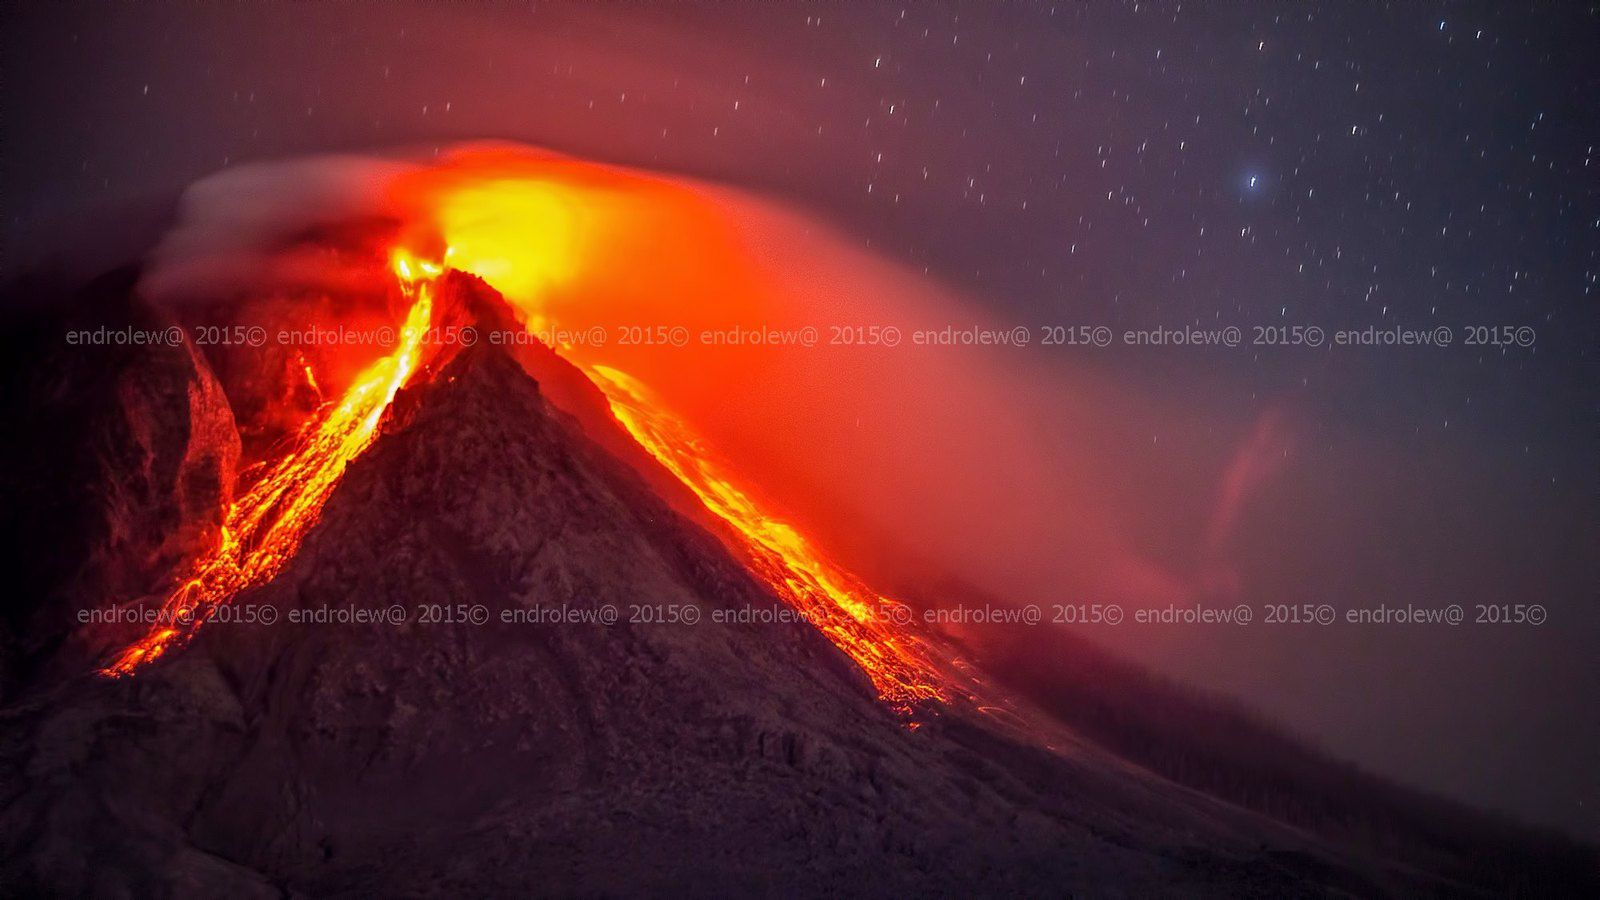 Sinabung the 21.06.2015 / 11:35 p.m. - photo endrolew@